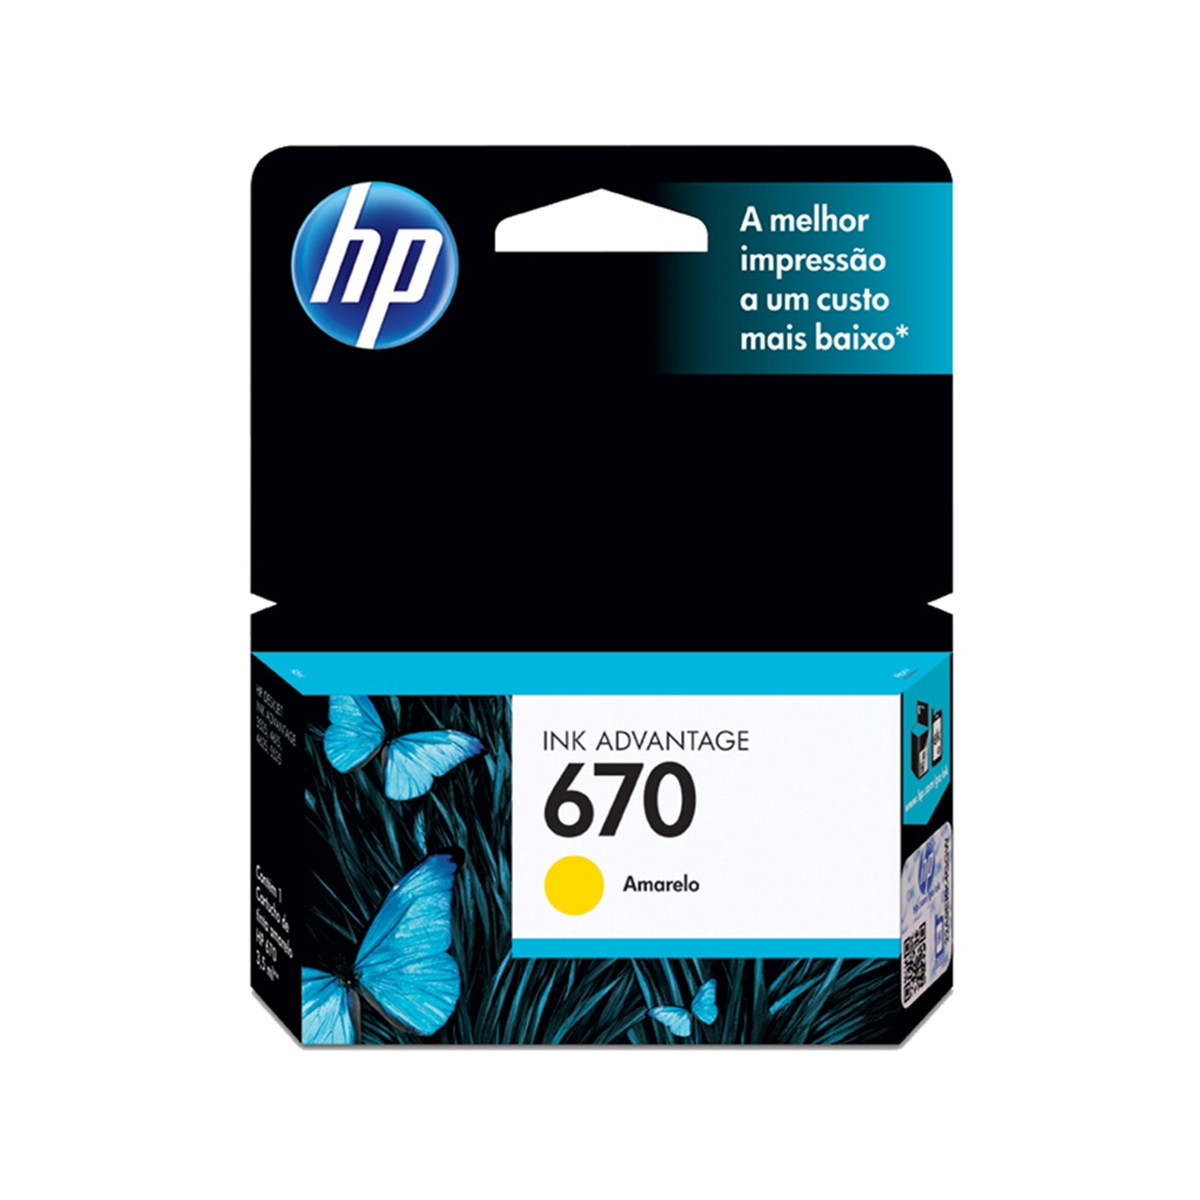 Cartucho de Tinta HP 670 CZ116AB Amarelo | Original HP | 3,5 ml